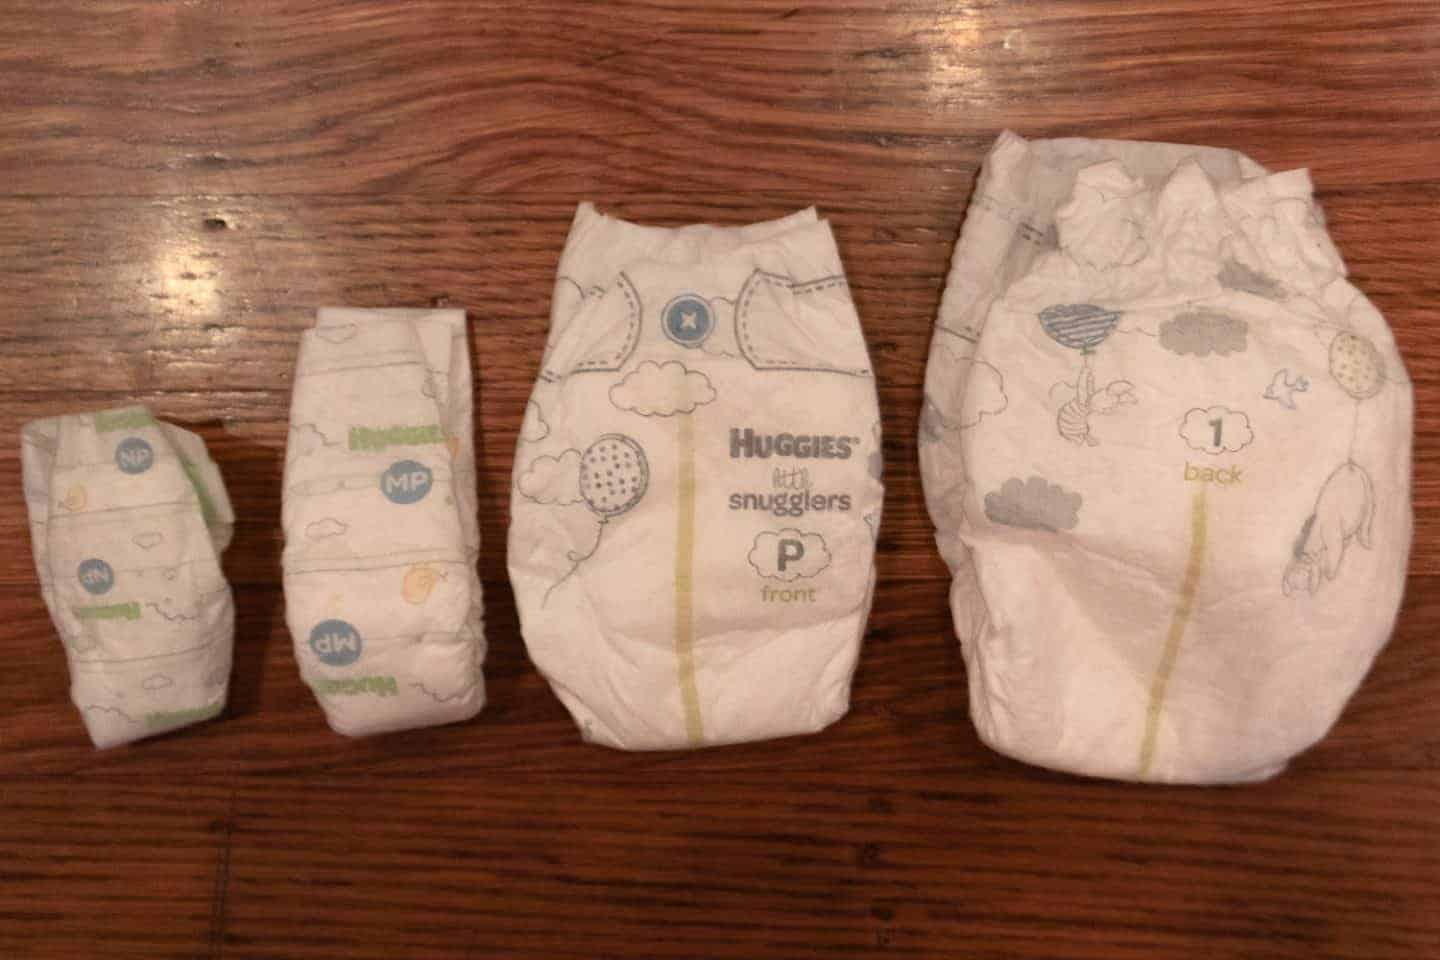 different sized diapers